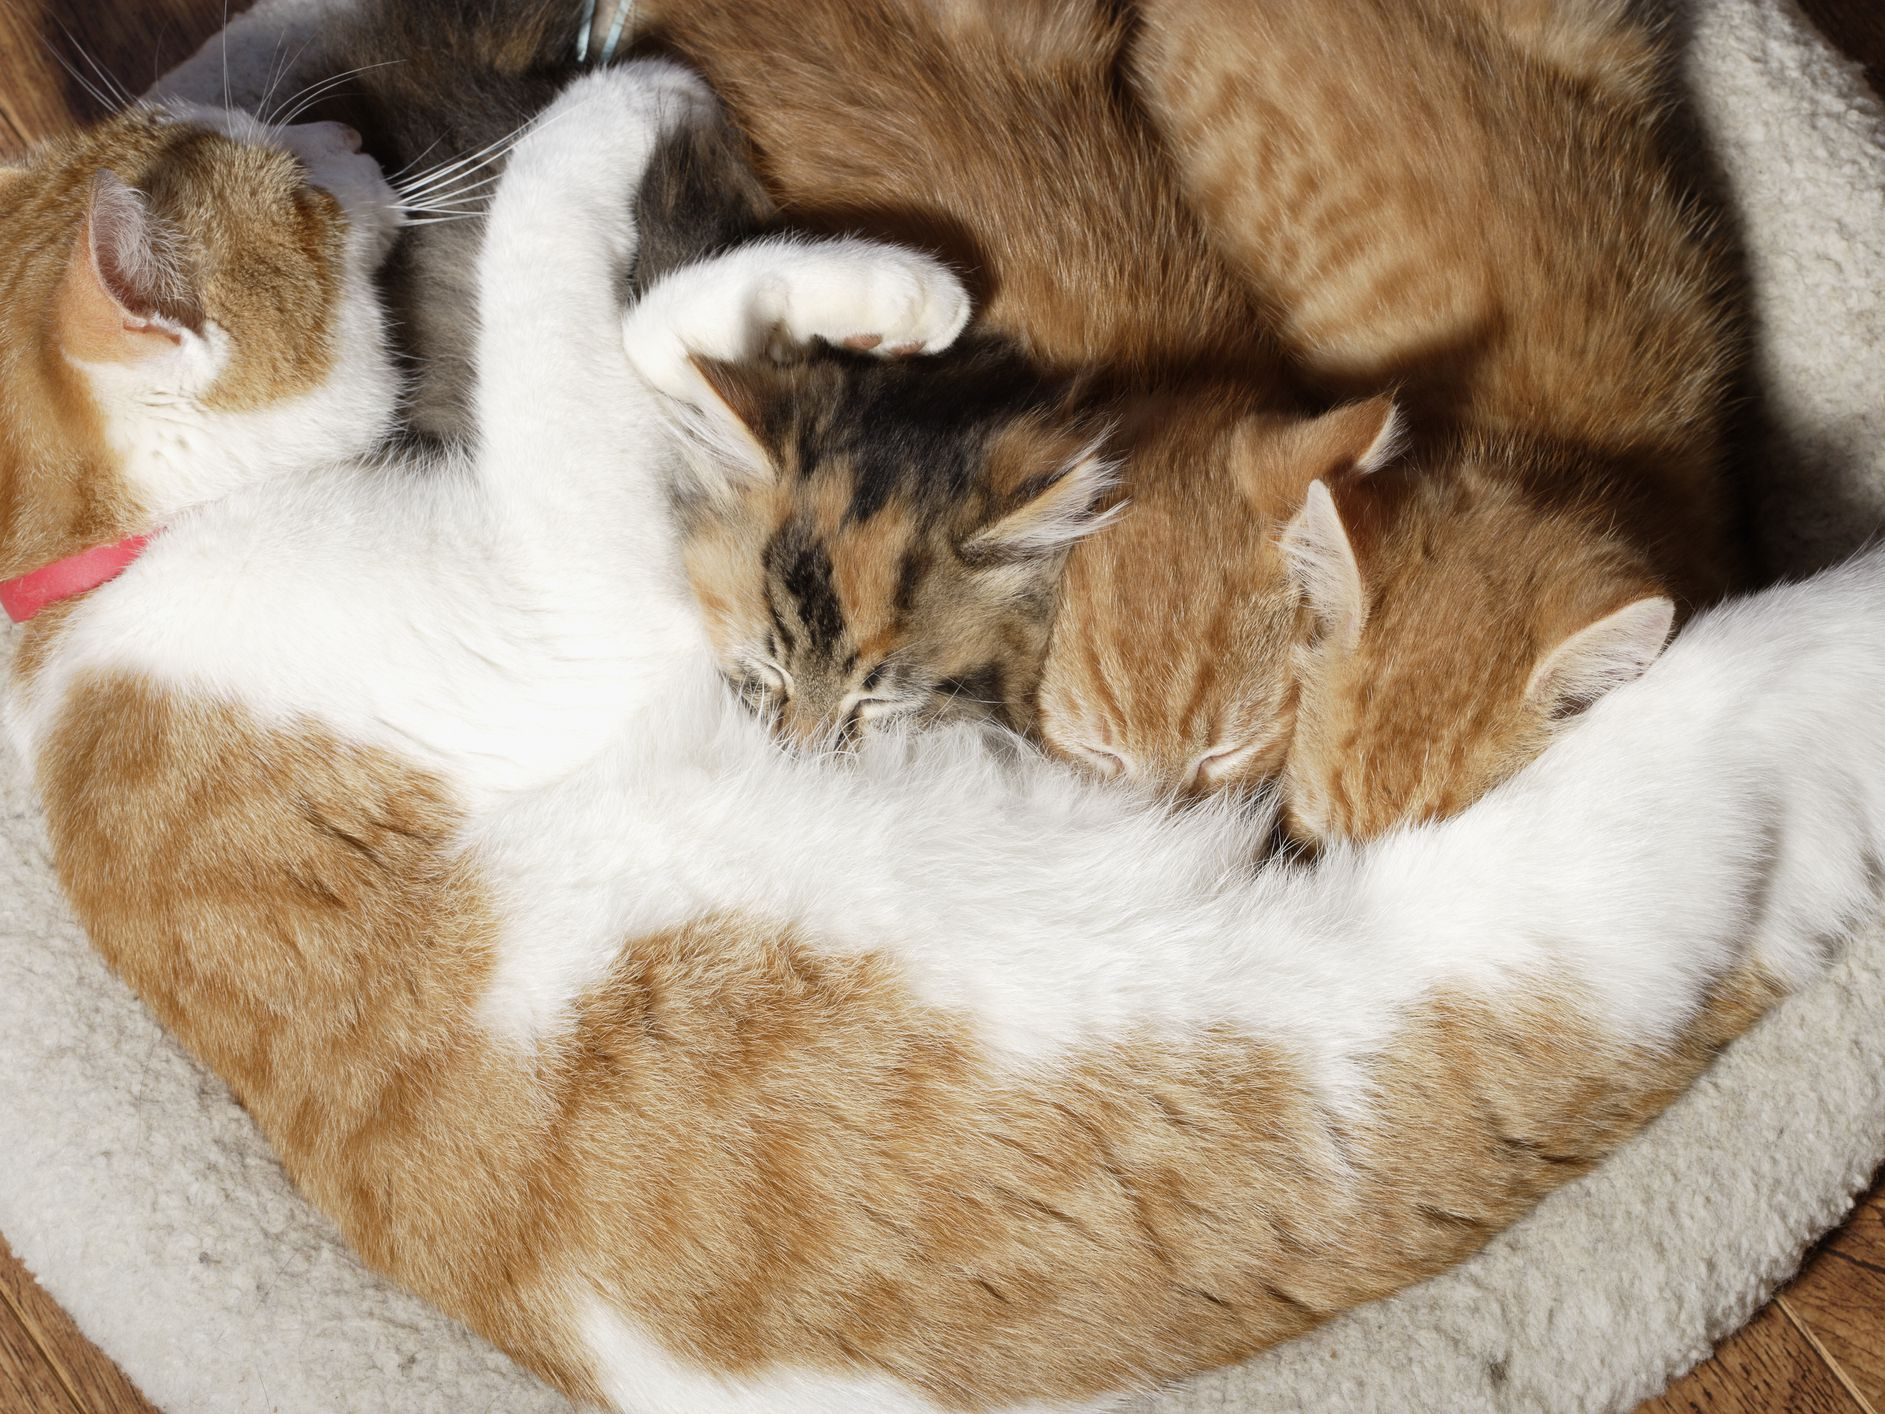 How Long Should a Kitten Stay With Its Mother?